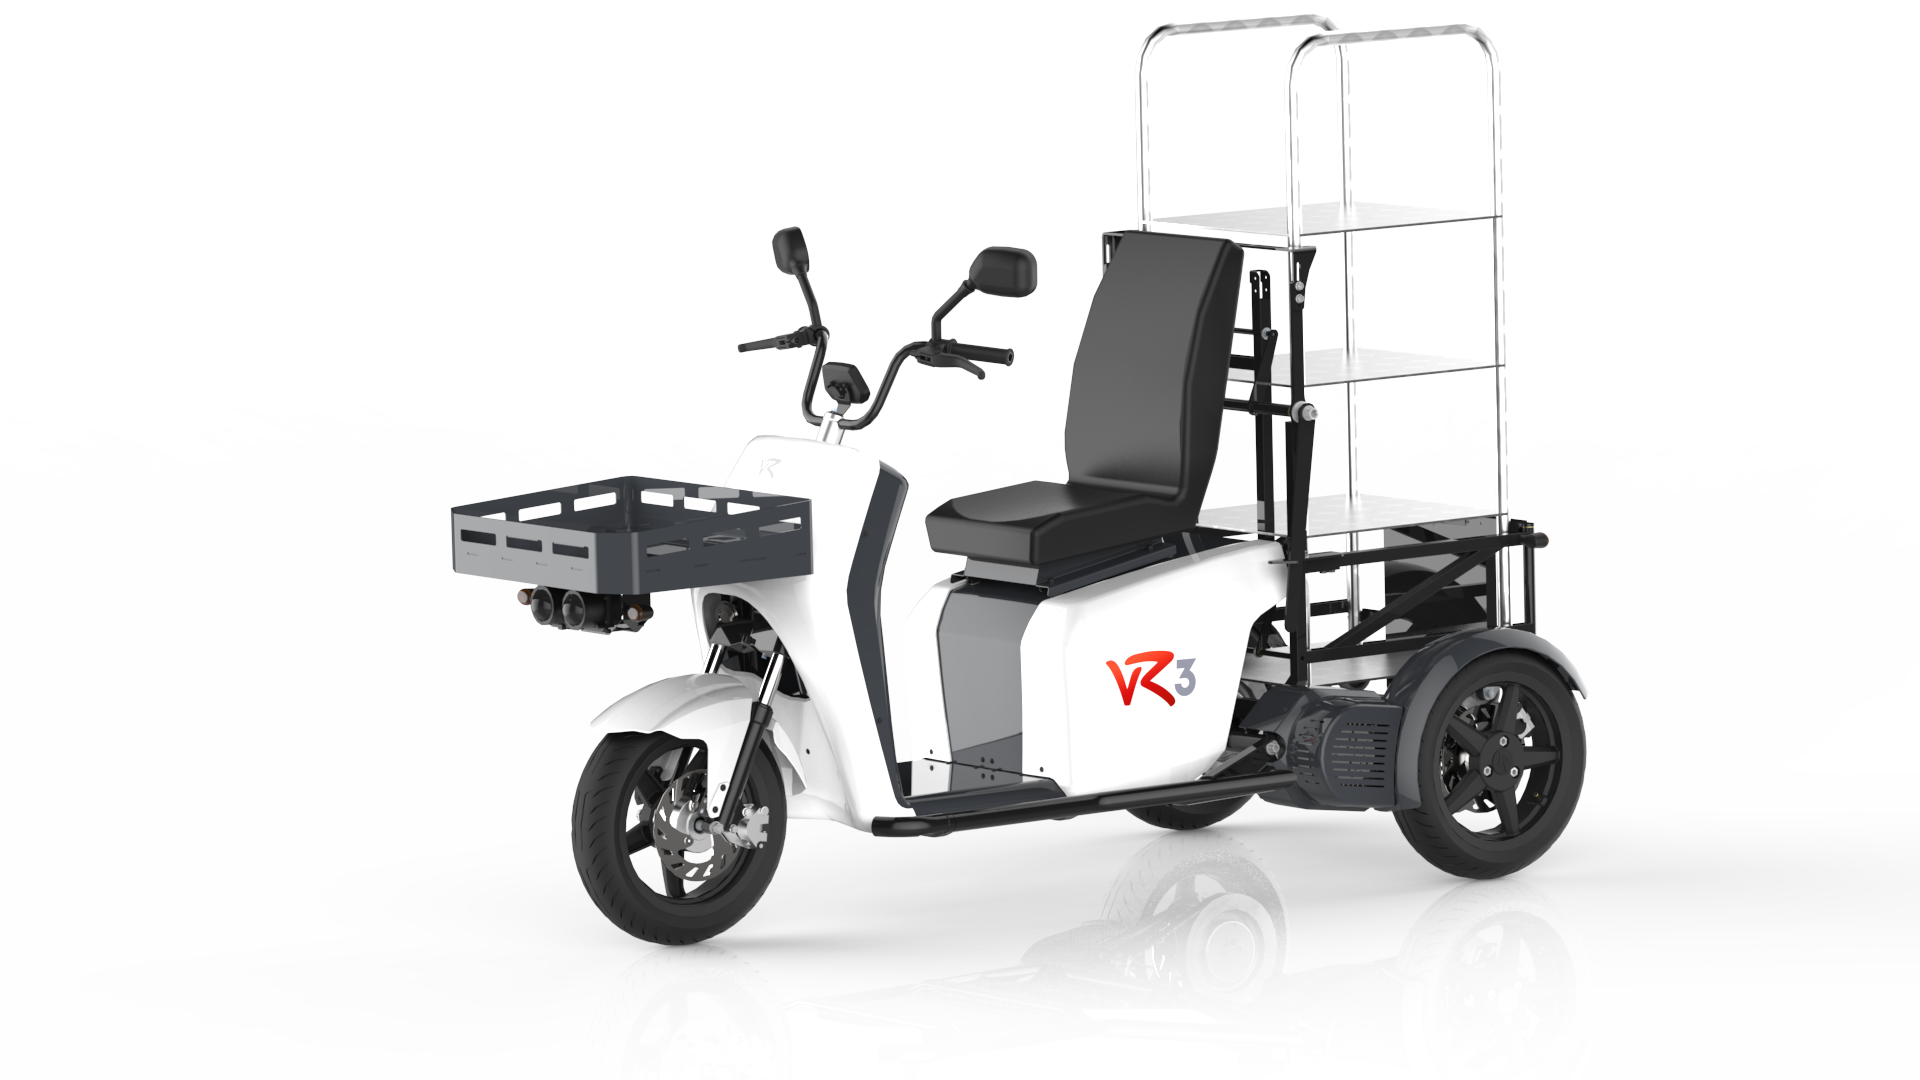 The vR3 electric tricycle as an internal transport vehicle for hospitals